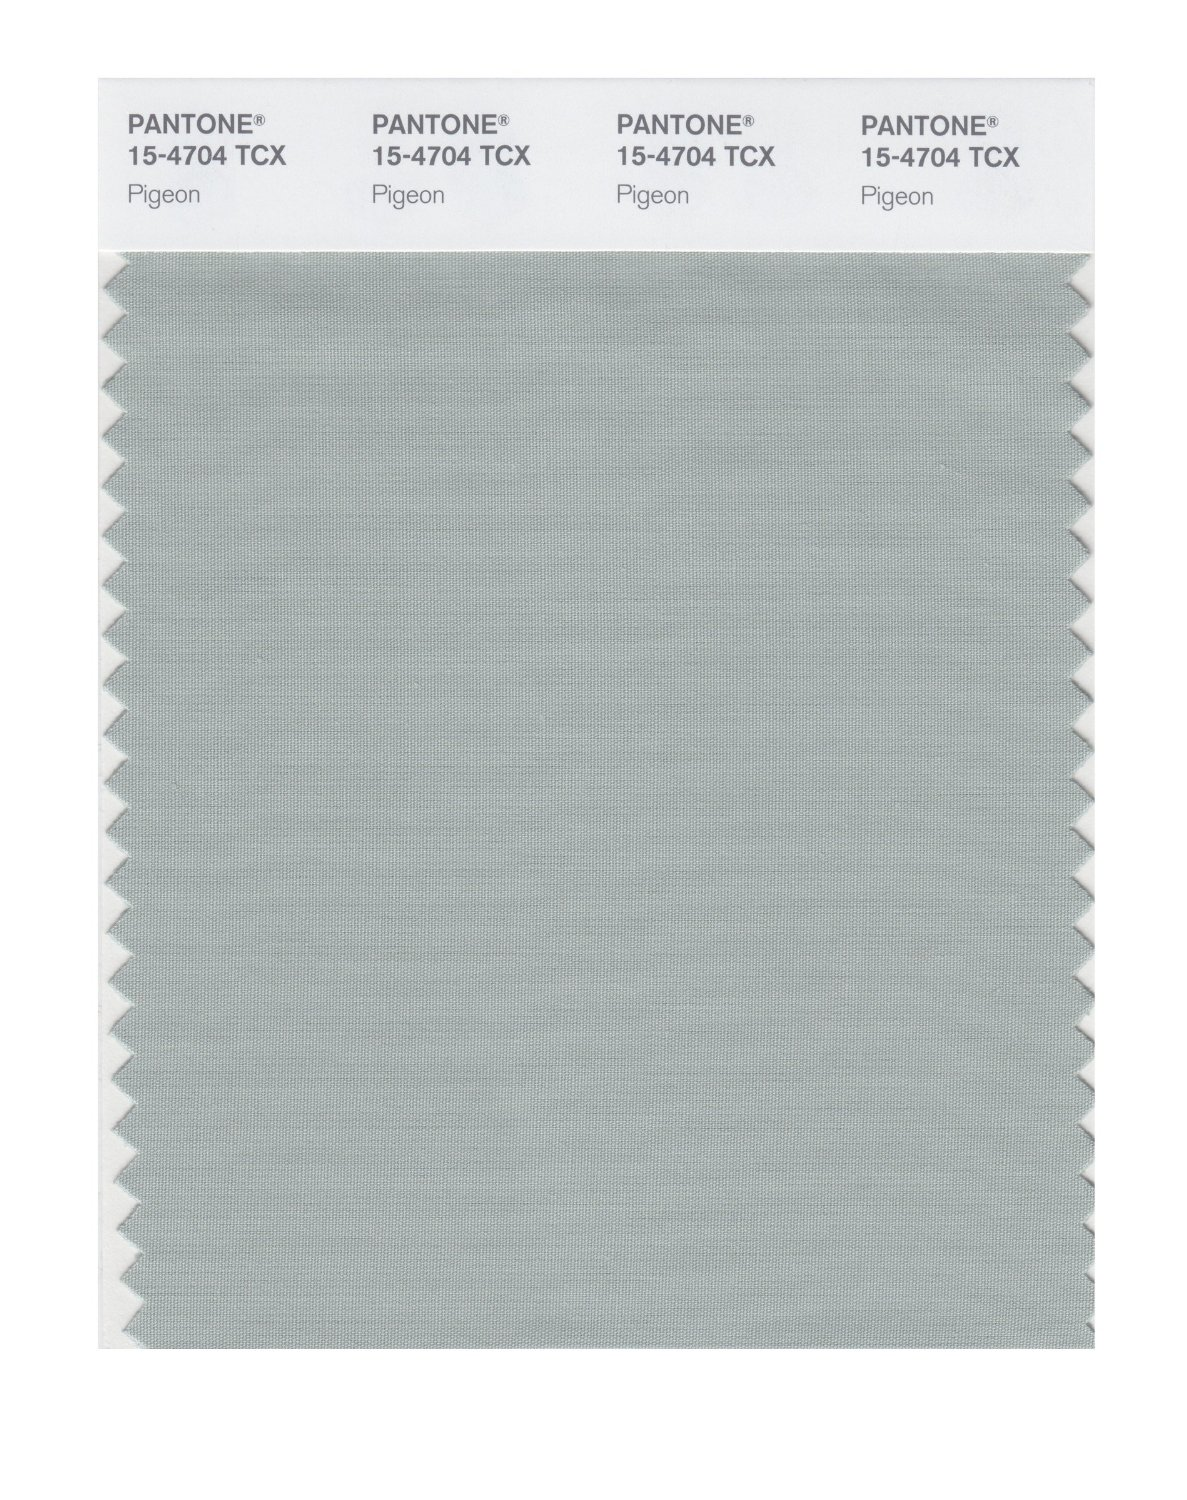 Pantone Smart Swatch 15-4704 Pigeon